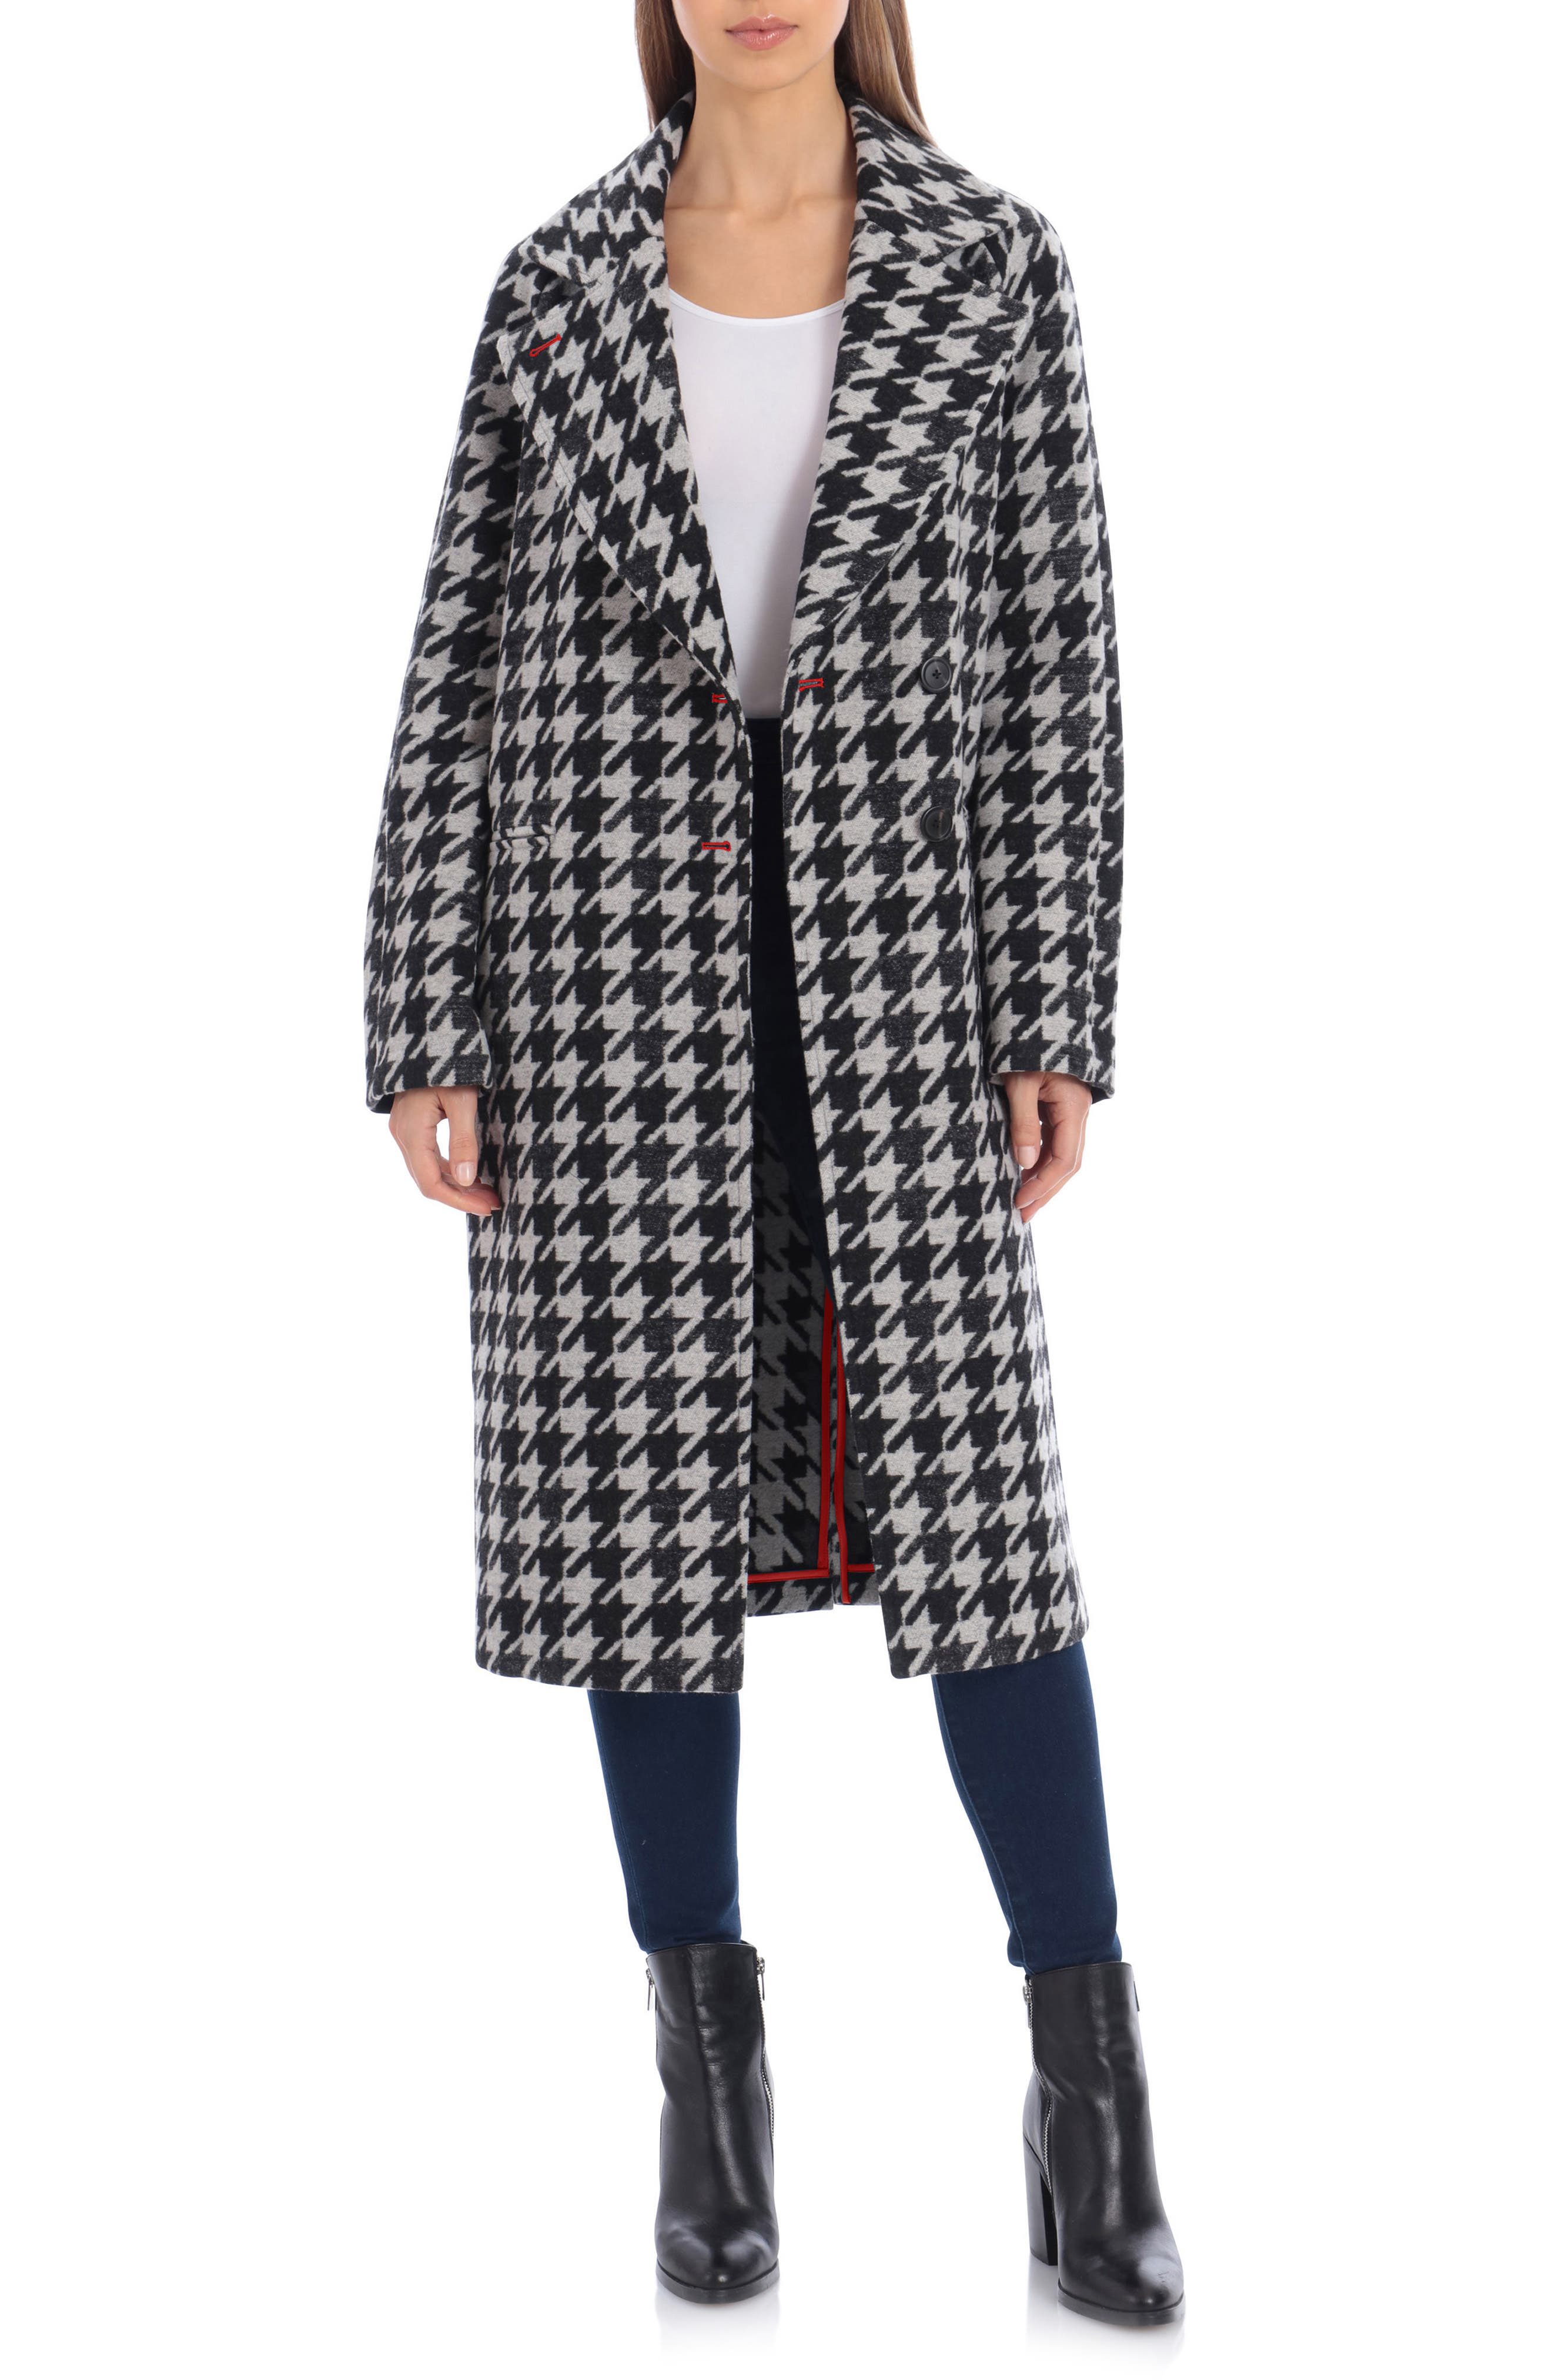 1950s Jackets, Coats, Bolero | Swing, Pin Up, Rockabilly Womens Avec Les Filles Houndstooth Oversize Double Face Coat Size XX-Large - Black $169.90 AT vintagedancer.com